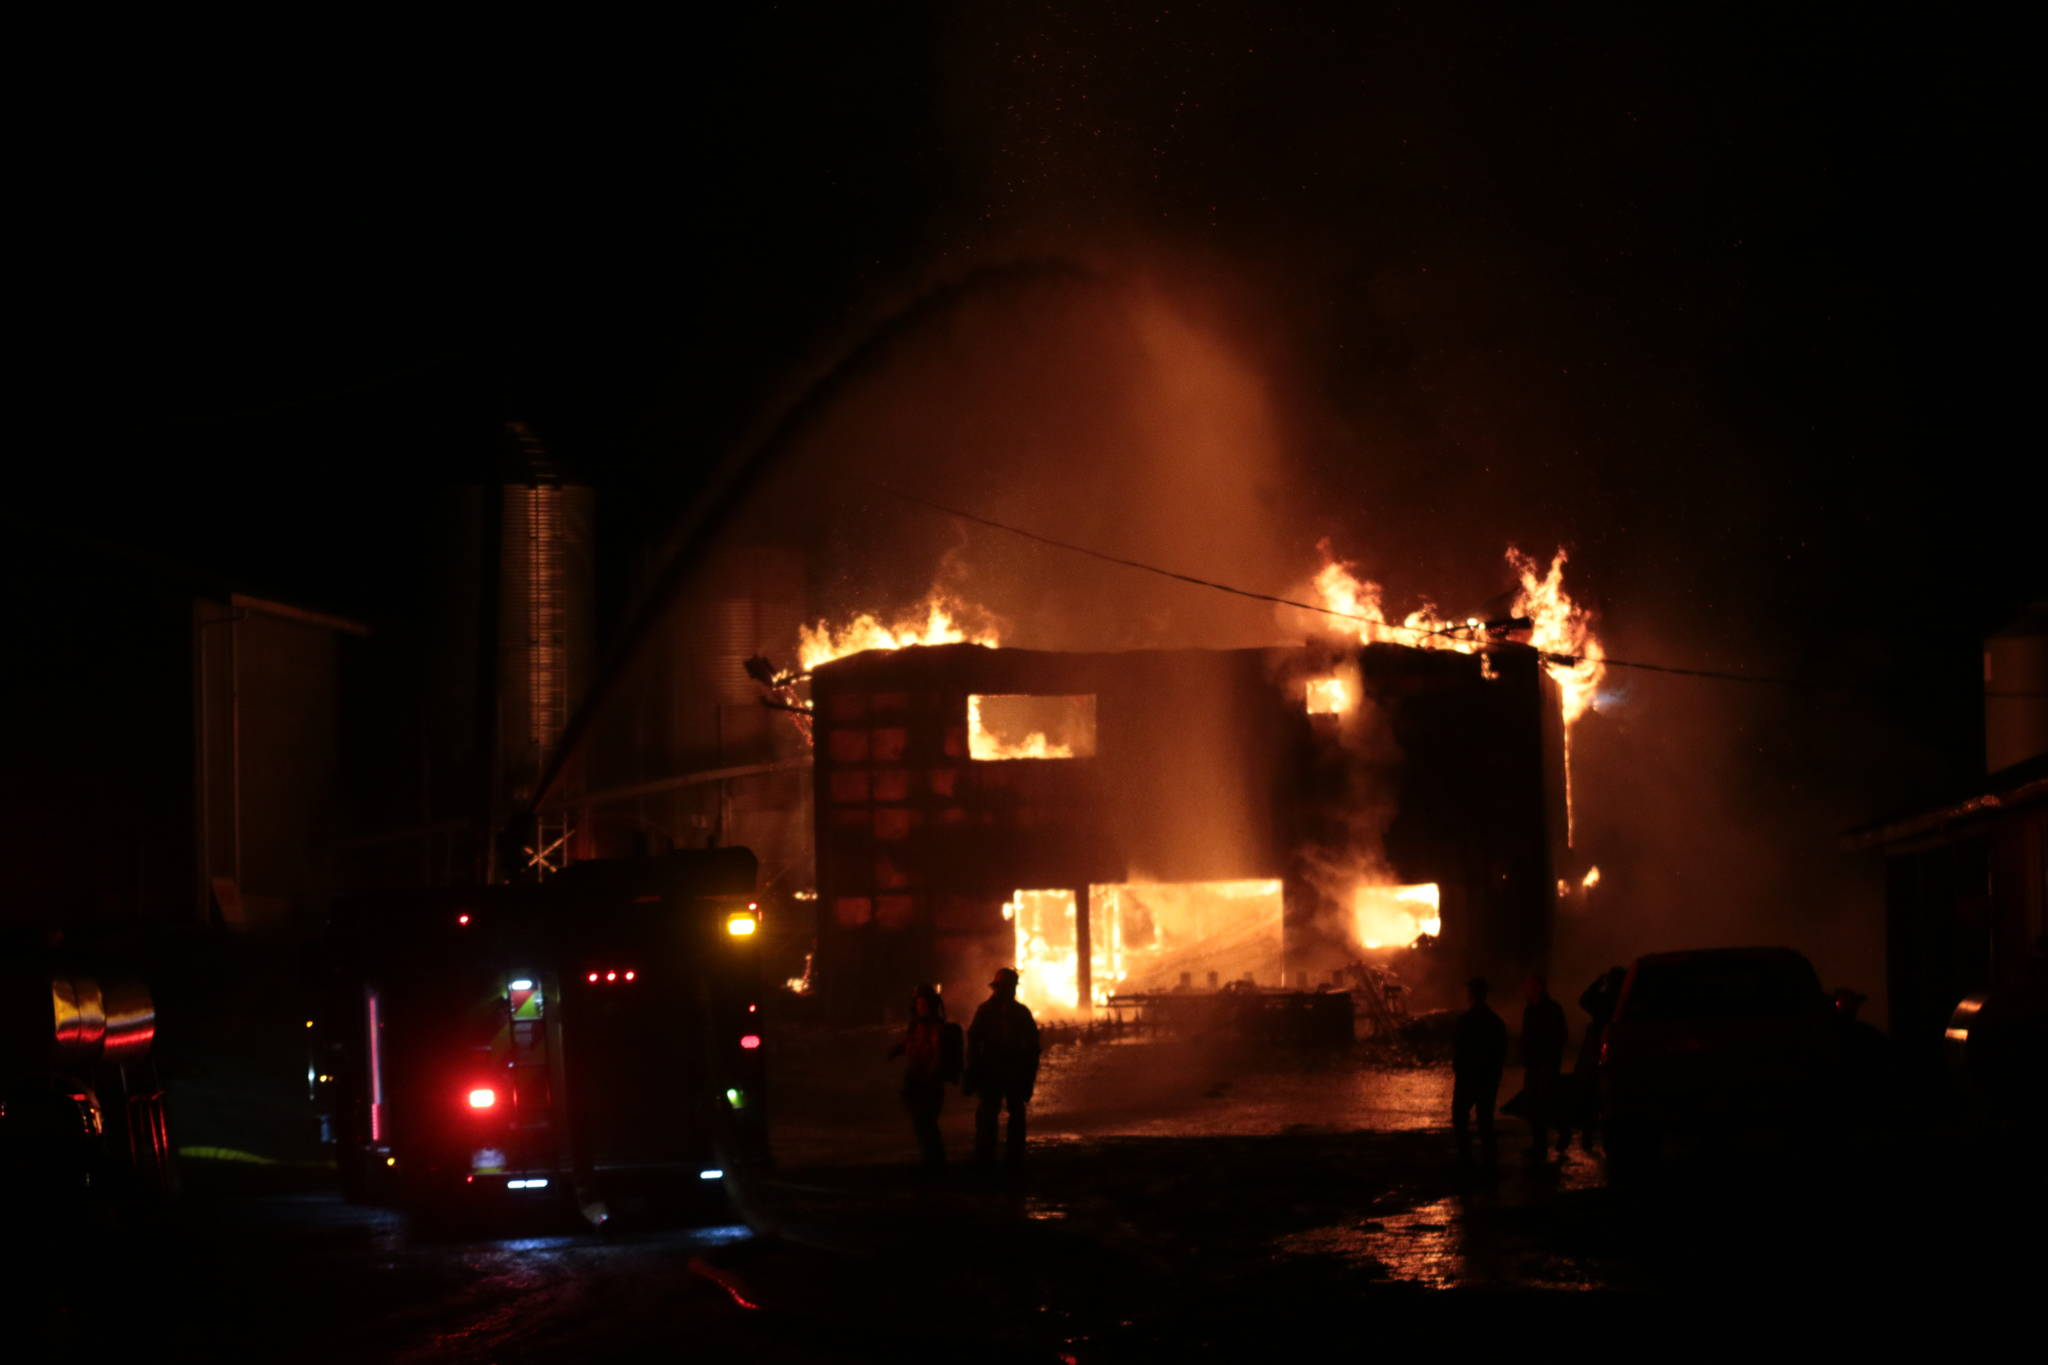 A structure fire at Farmer Ben's on Herd Road Sunday night called for crews from three fire departments to battle the blaze. (Kevin Rothbauer/Citizen)